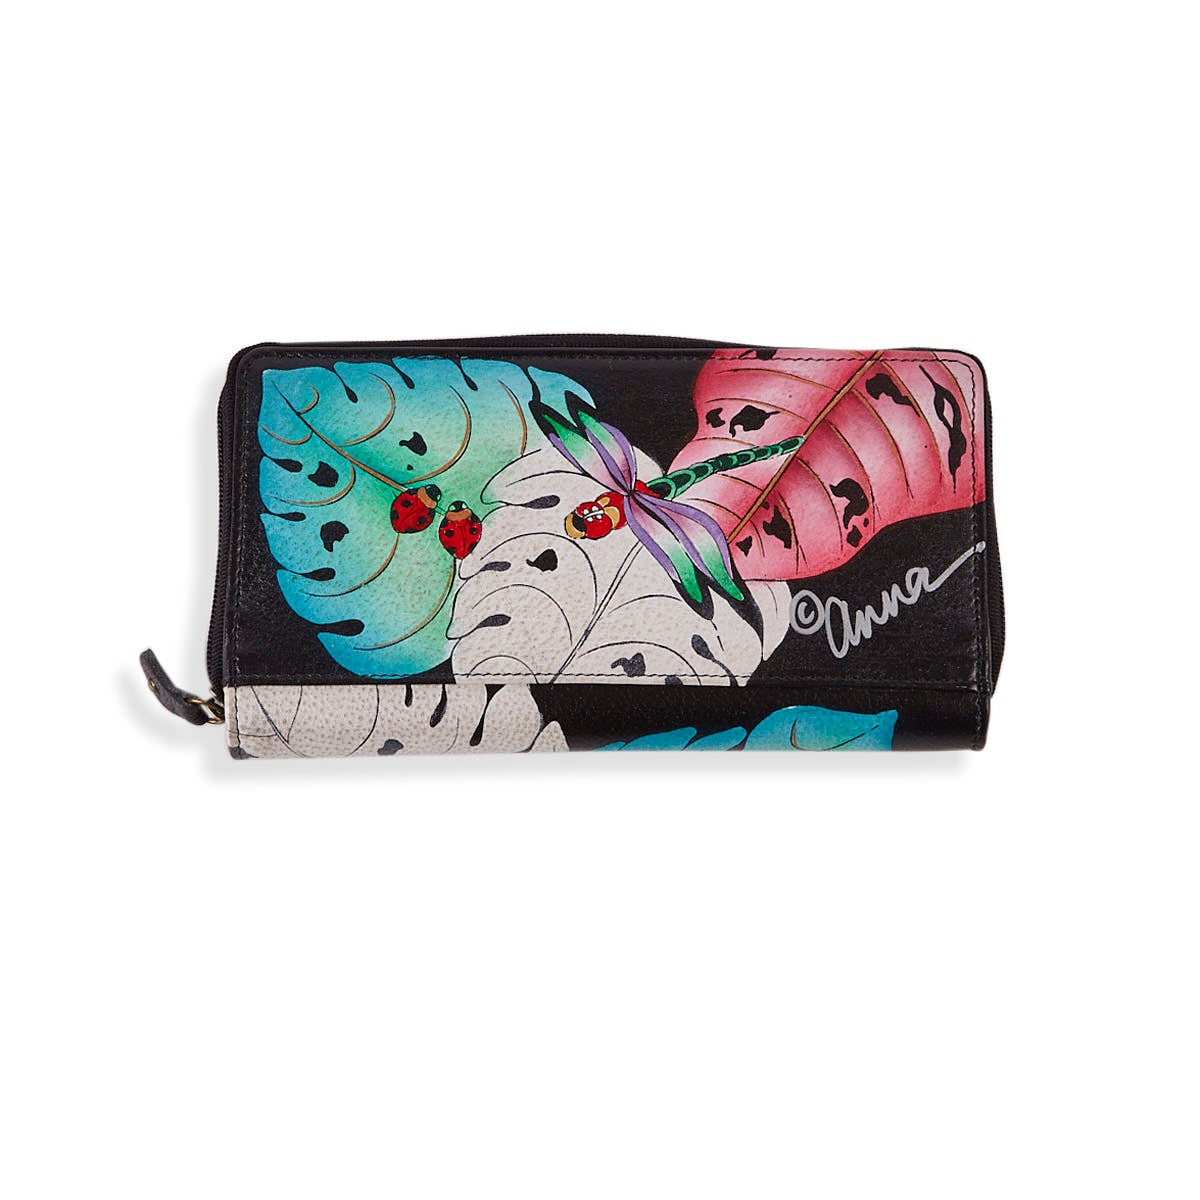 Painted leather Lovely Leaves wallet